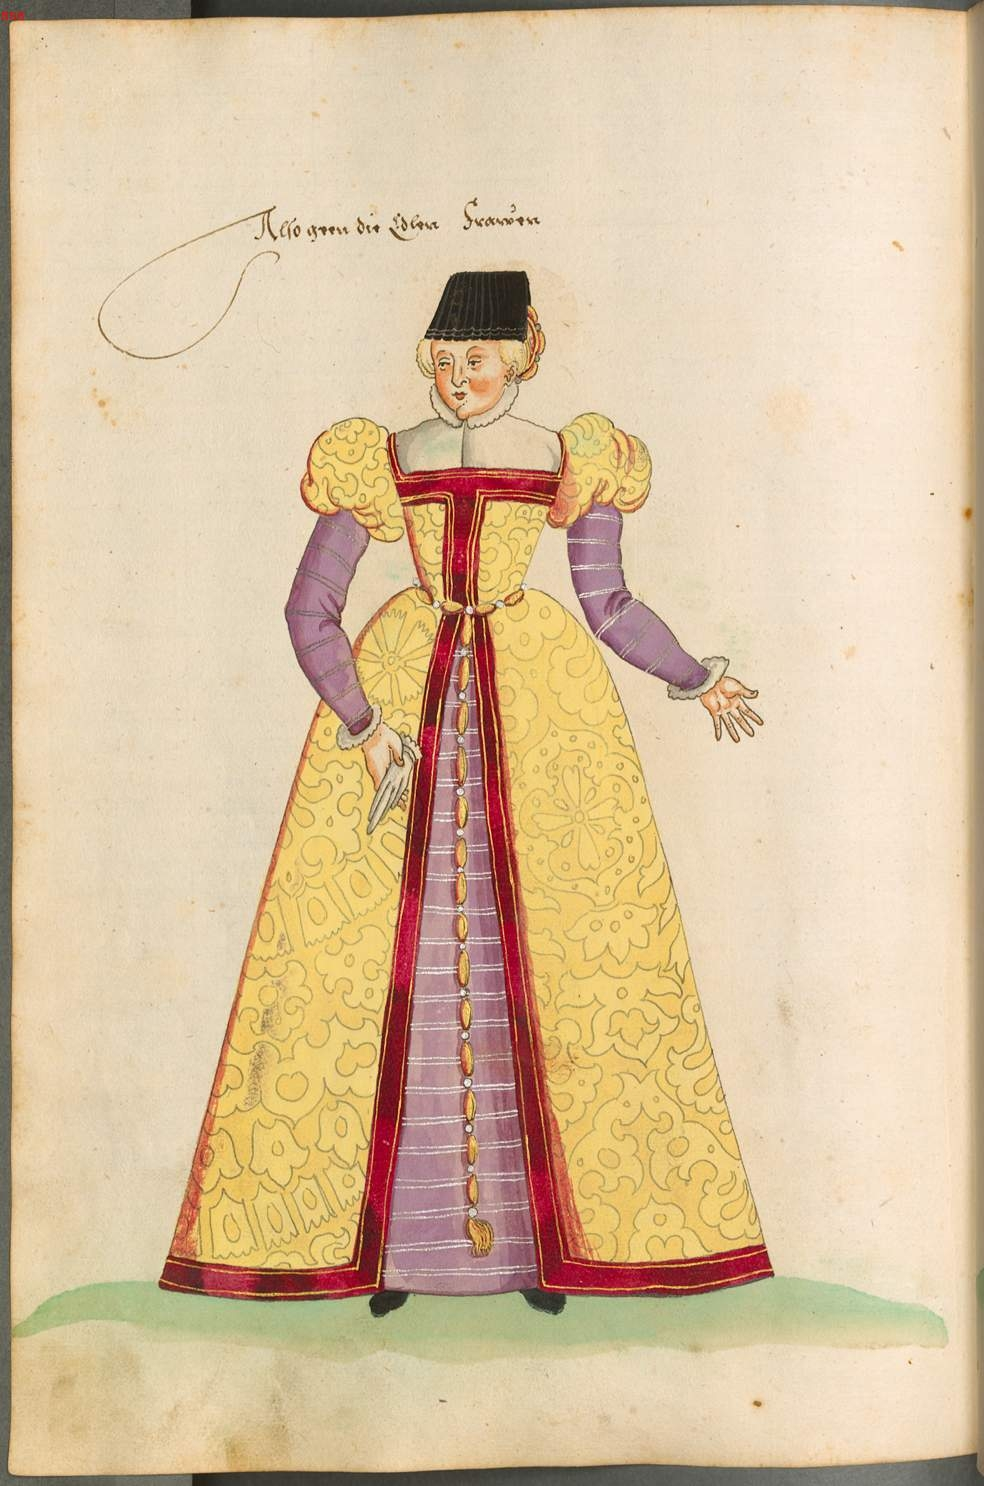 date unknown - Costumes for men and women: Cologne, Flanders, Holland, Friesland, Burgundy, France